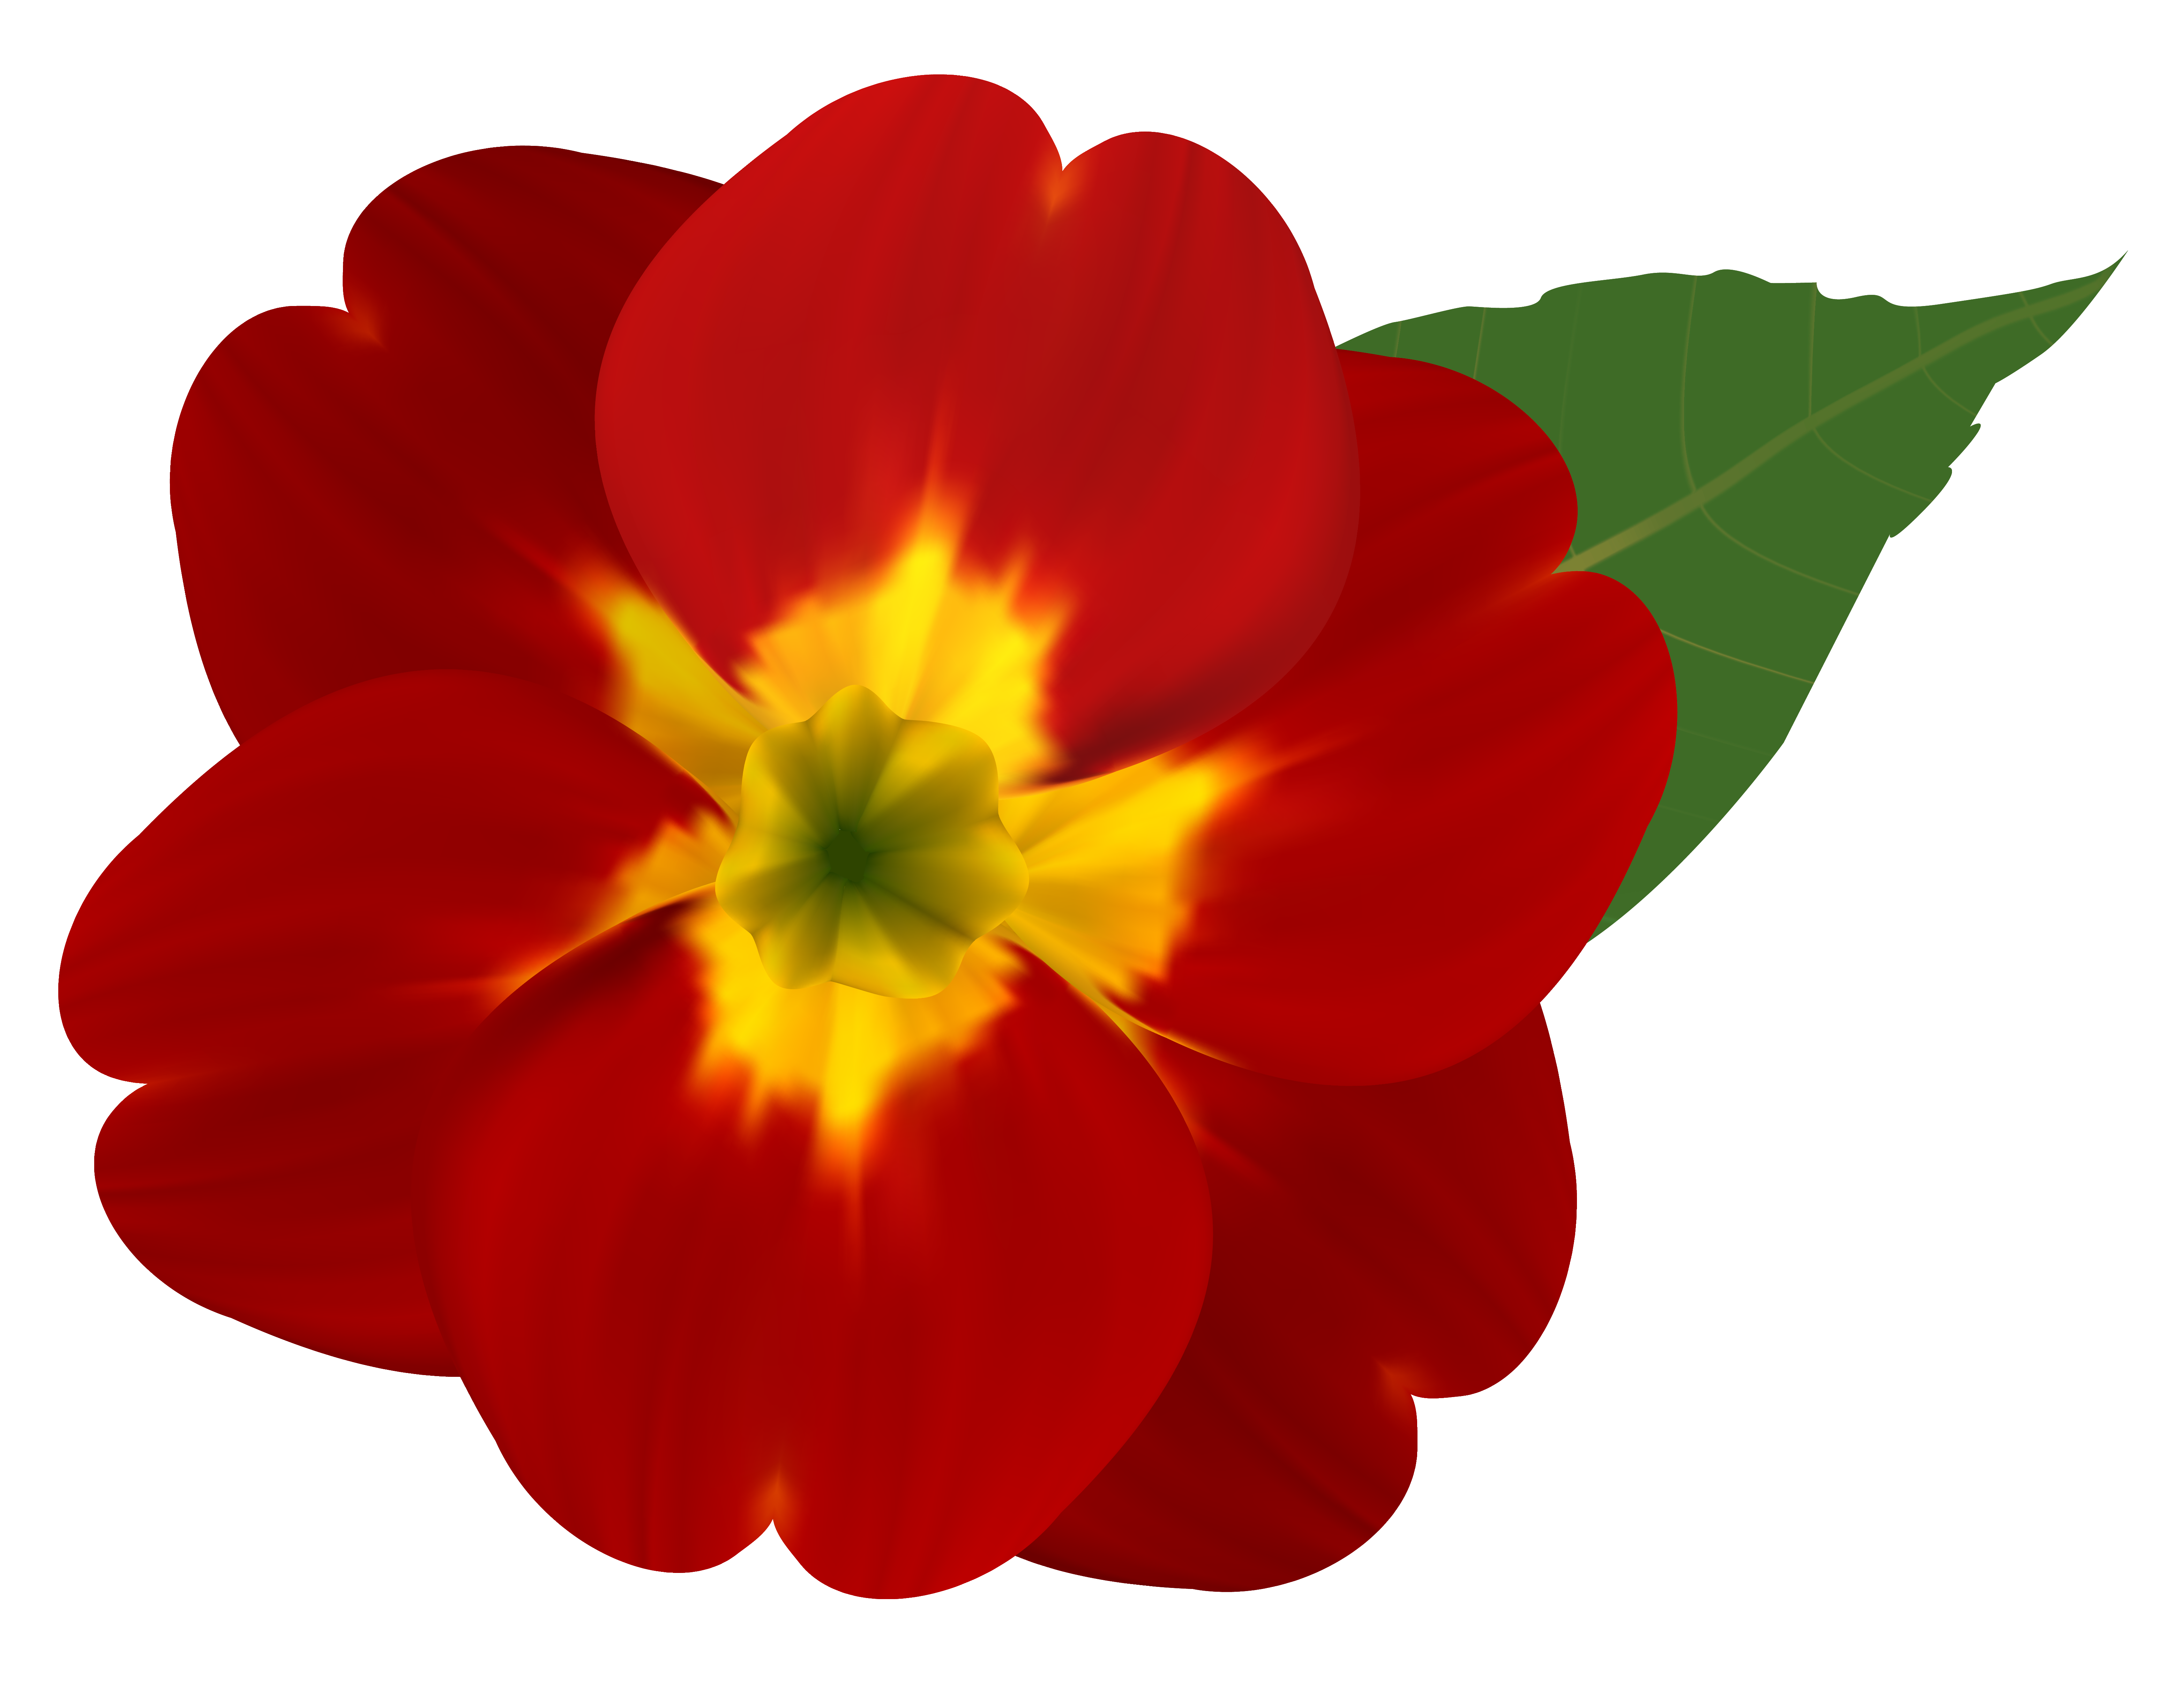 Clipart flower red. And yellow png image